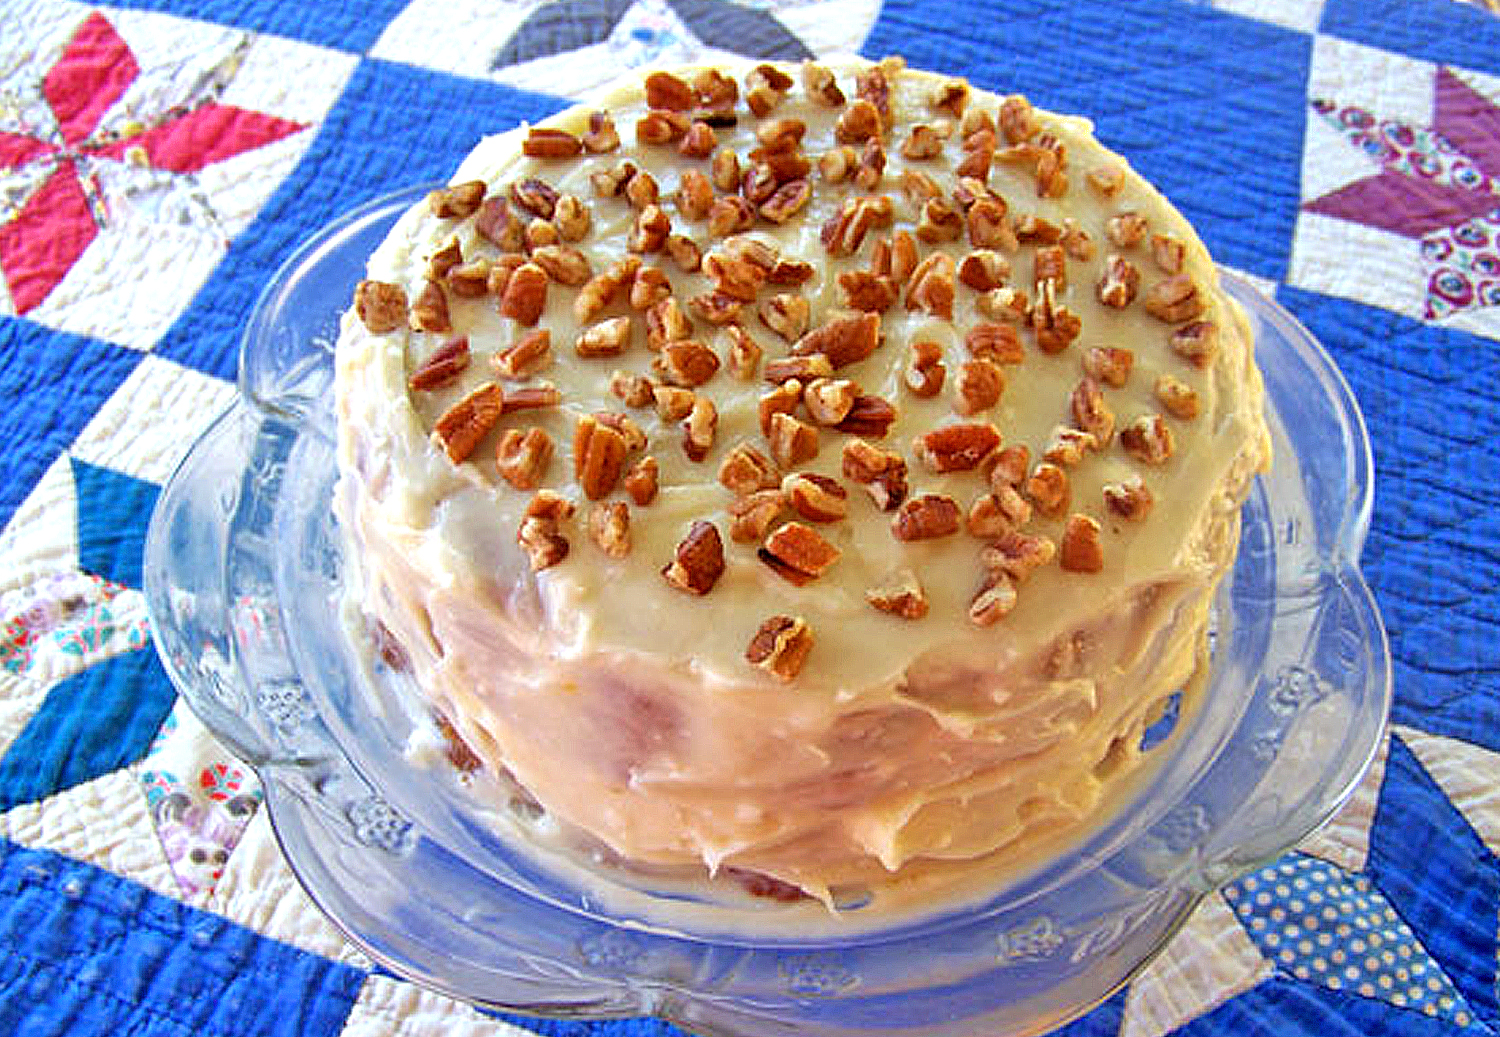 Pawpaw cake with frosting and nuts